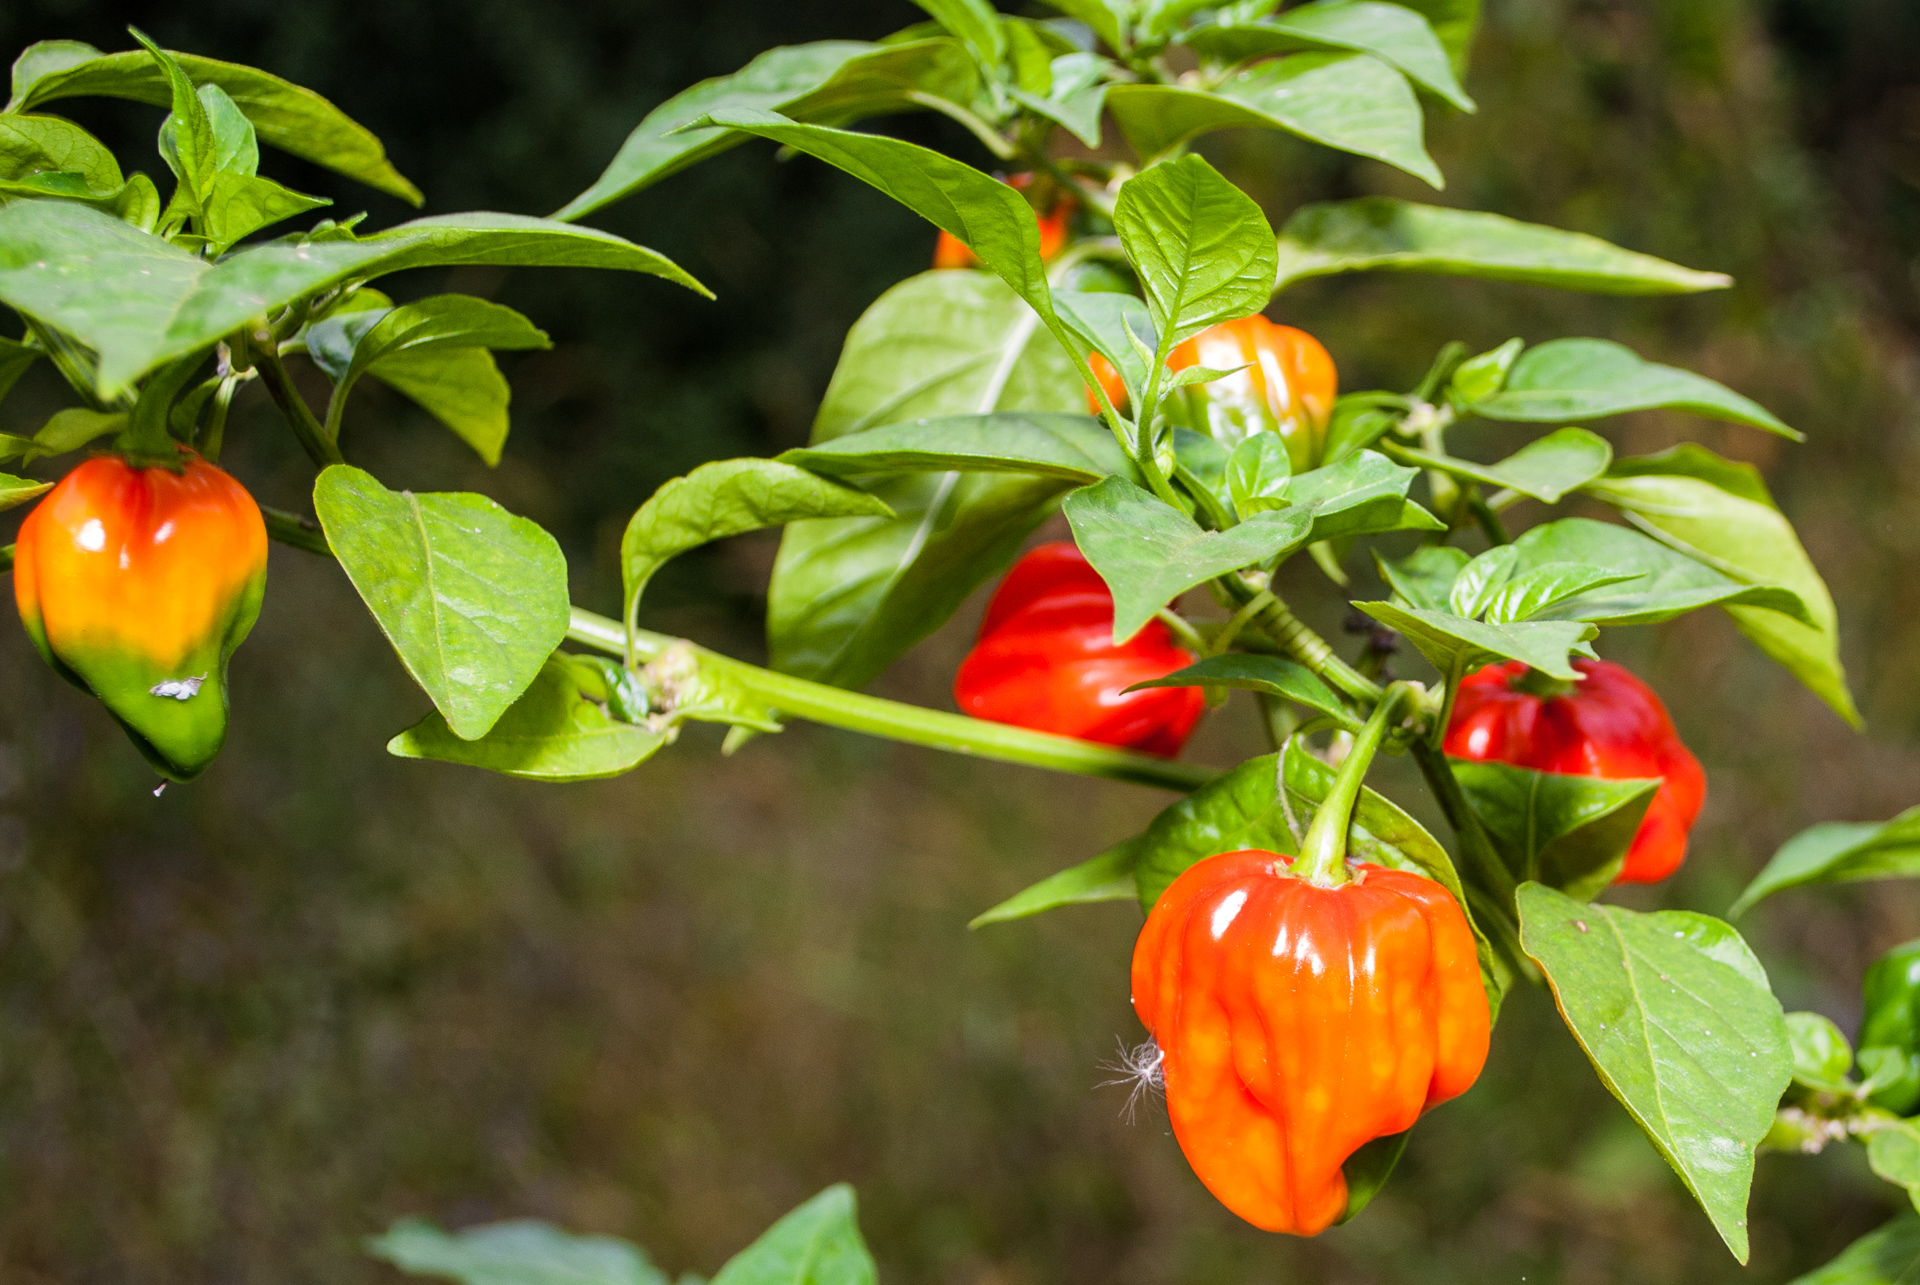 Litcen13 202 - Capsicum annuum - Chilisorte